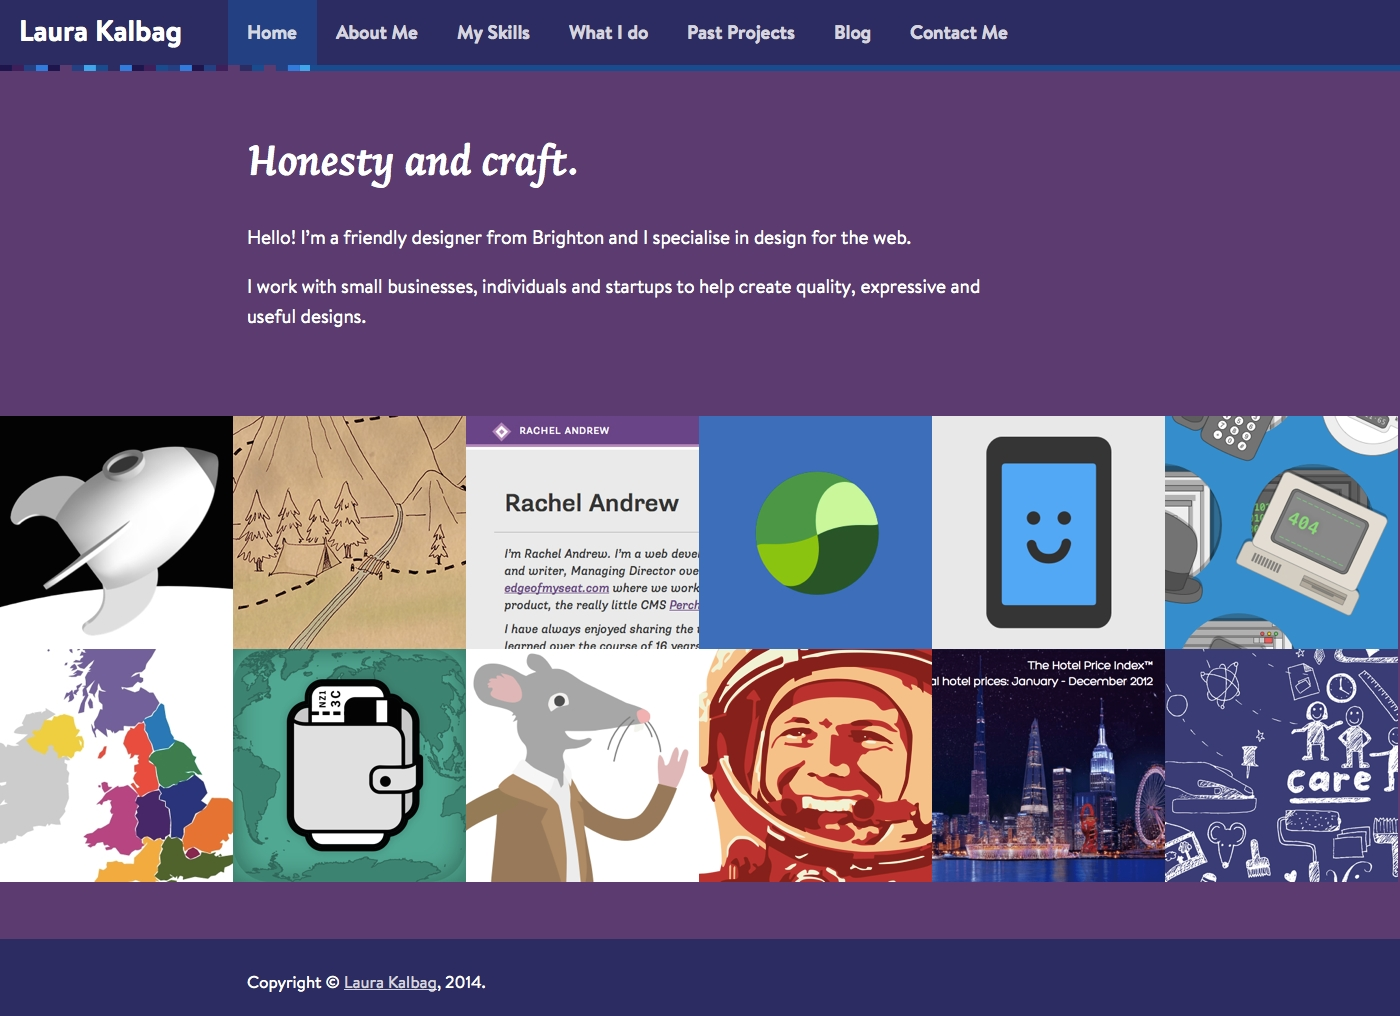 New version of the homepage, with just an introduction and larger portfolio images